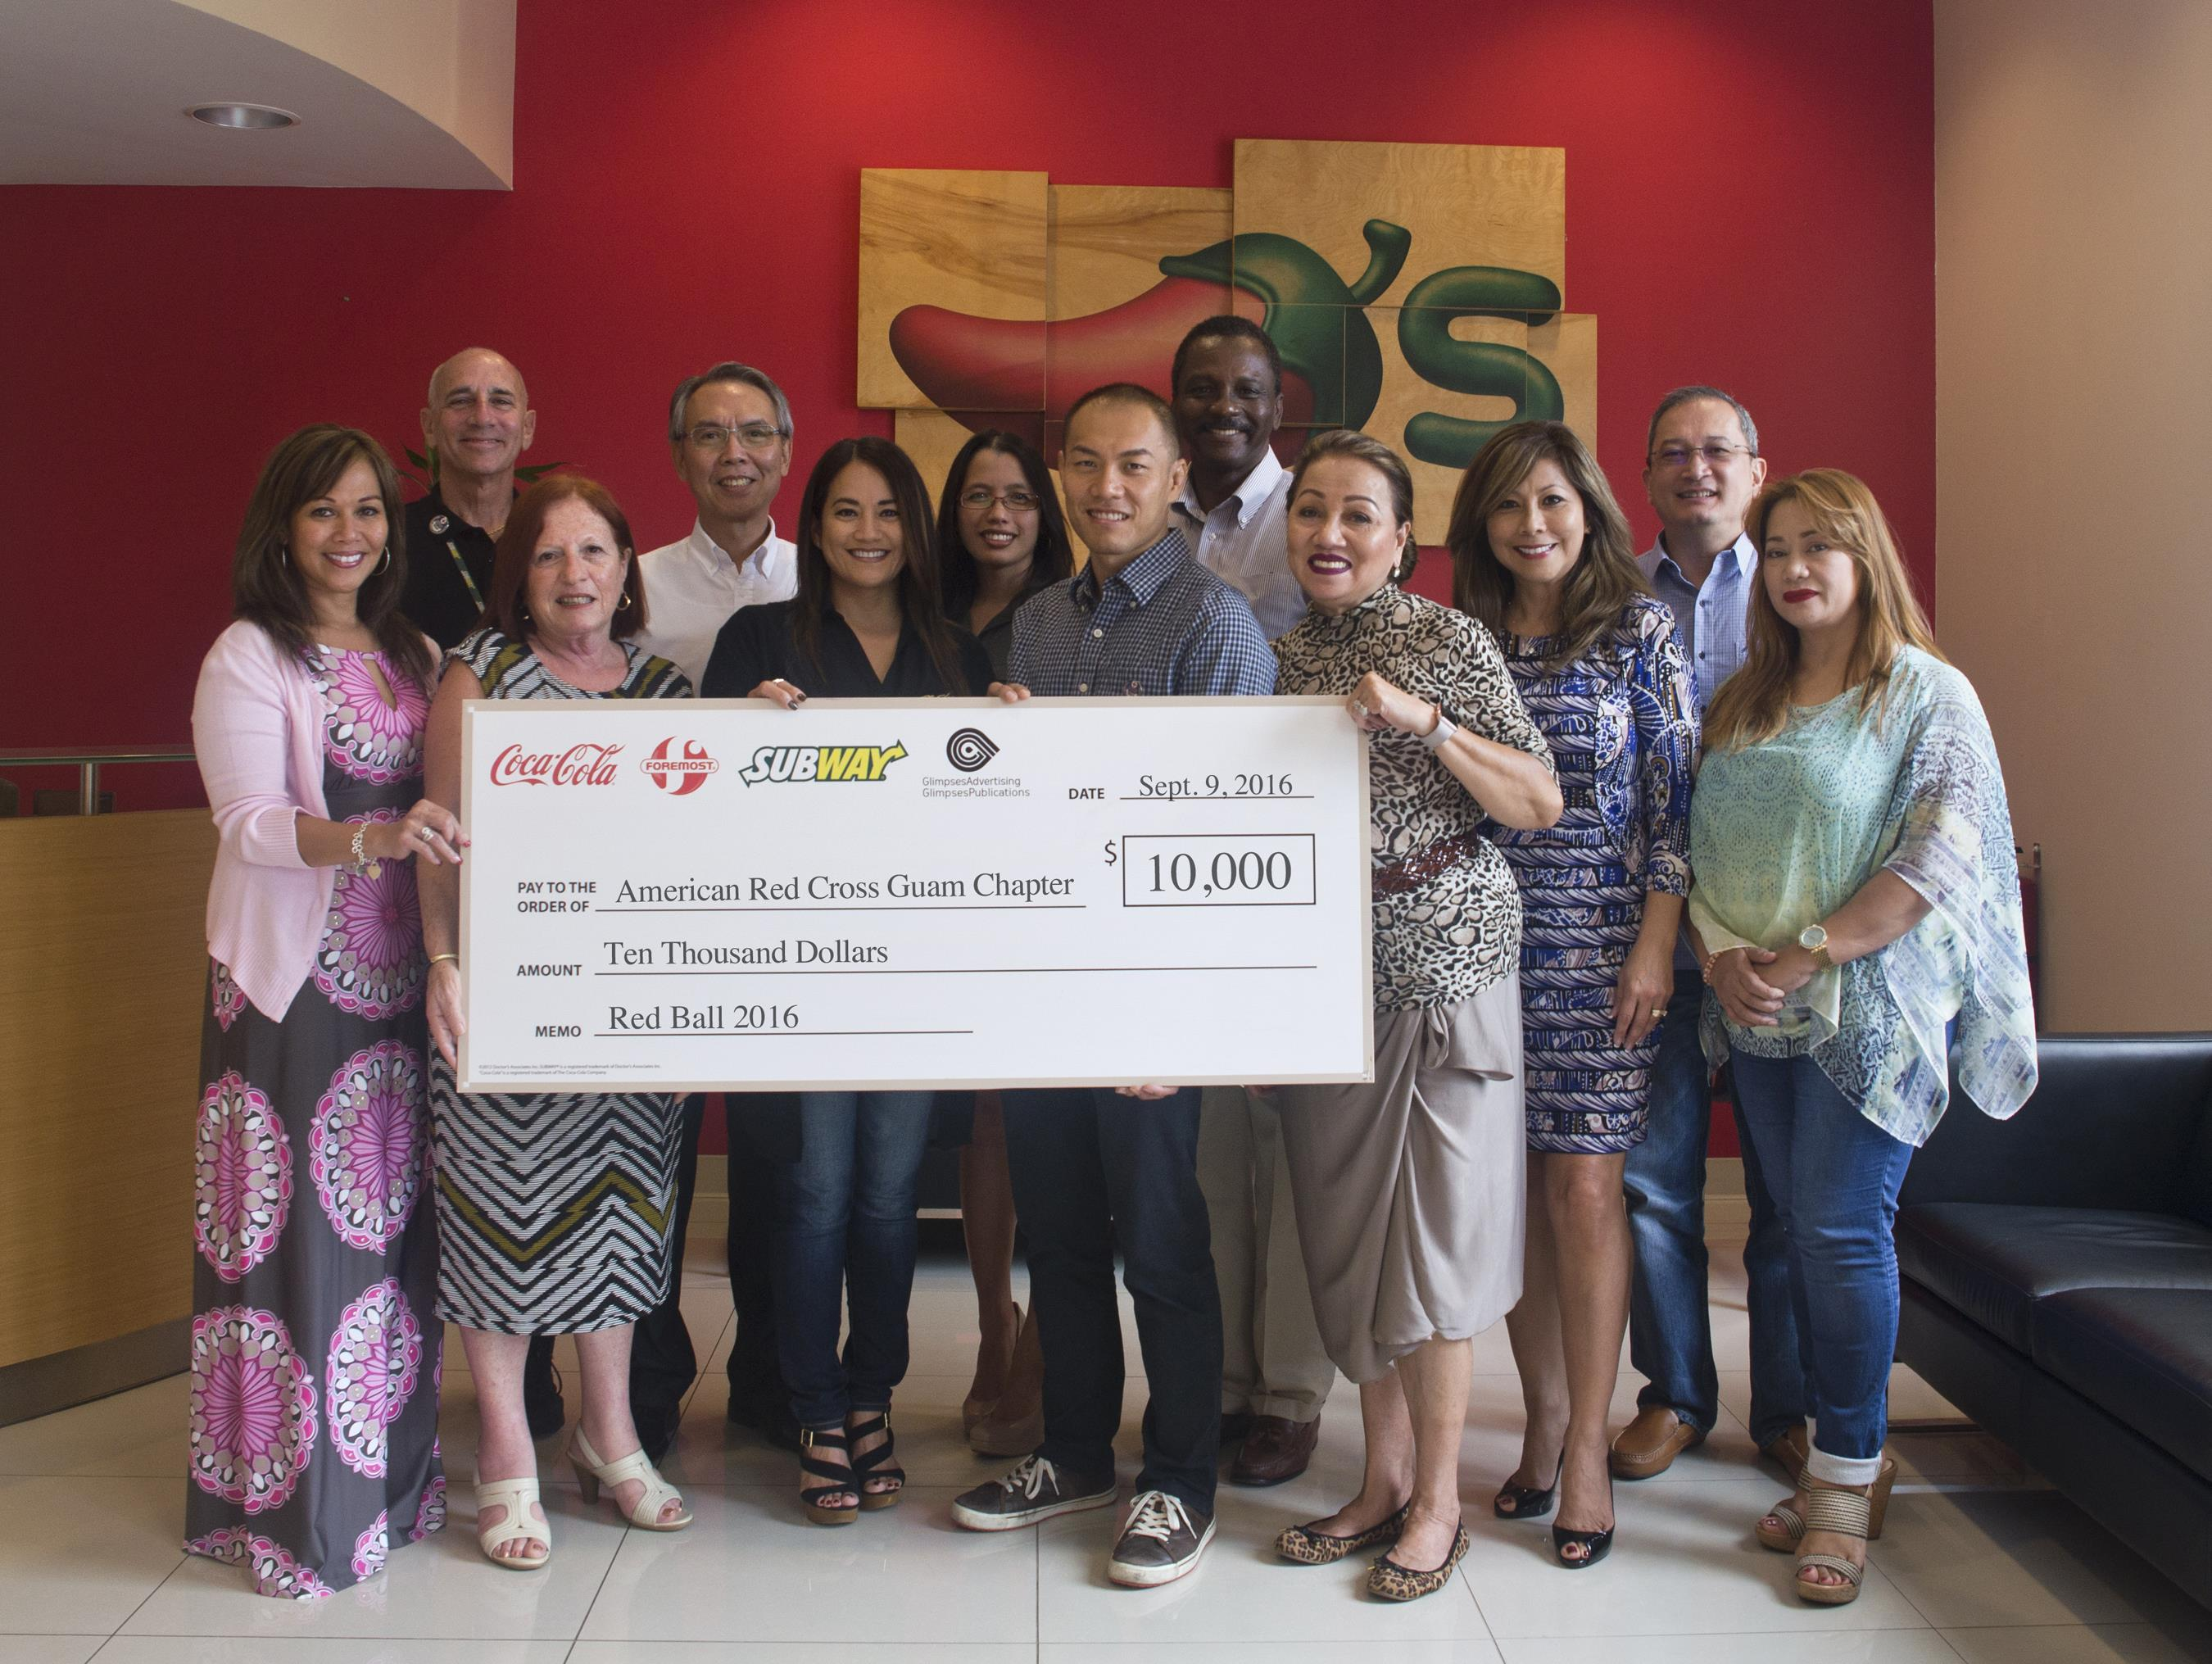 (L-R: Caroline Sablan, Board Member, ARC Guam Chapter; Gary Schiff, director of brand management, Subway Restaurants of Guam, Saipan and AAFES and NEXCOM Japan; Maureen N. Maratita, publisher, Glimpses Publications; Ernest Mak, director of operations, Foremost Foods Inc. and Coca-Cola Beverage Co. (Guam); Monica Duenas, Board Member, ARC Guam Chapter; Sharleen Marchesseault, director of agency services, Glimpses Advertising; Marcos W. Fong, group executive vice president, Foremost Foods Inc., Coca-Cola Beverage Co. (Guam), Glimpses of Guam Inc. and Nakicos Corp.; Karvin Flynn, Board Treasurer, ARC Guam Chapter; Chita A. Blaise, CEO, ARC Guam Chapter; Lucy Alcorn, Board Member, ARC Guam Chapter; Ed Ilao, Board Member, ARC Guam Chapter; and Margie Nicolas Training Program Coordinator, ARC Guam Chapter.